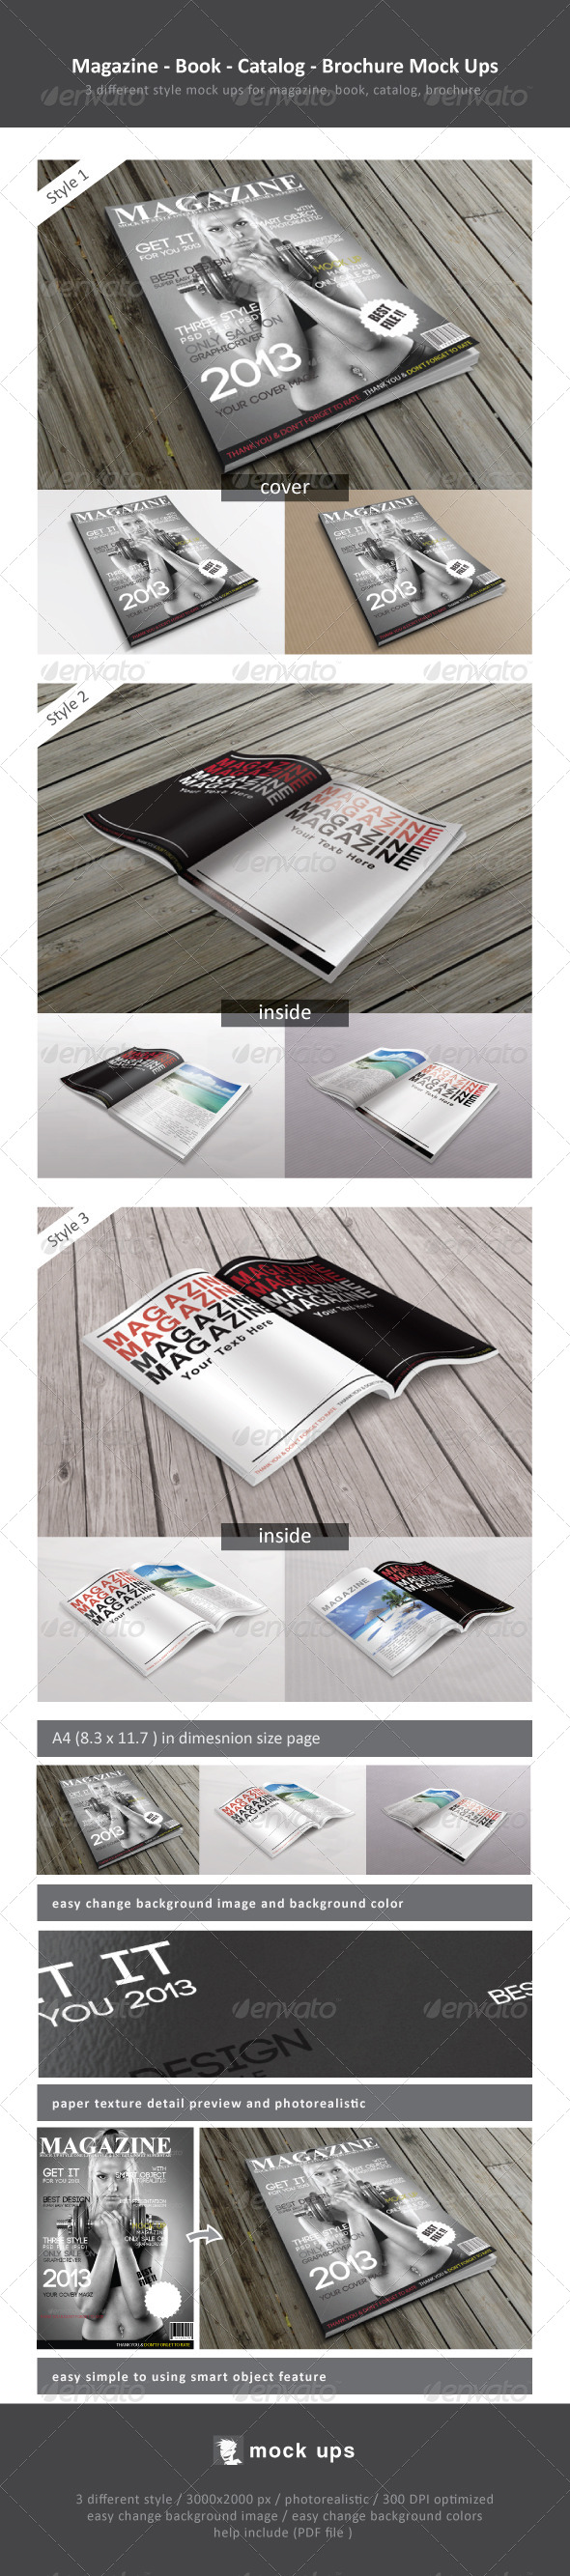 GraphicRiver Magazine Book Catalog Brochure Mock Ups 4524699